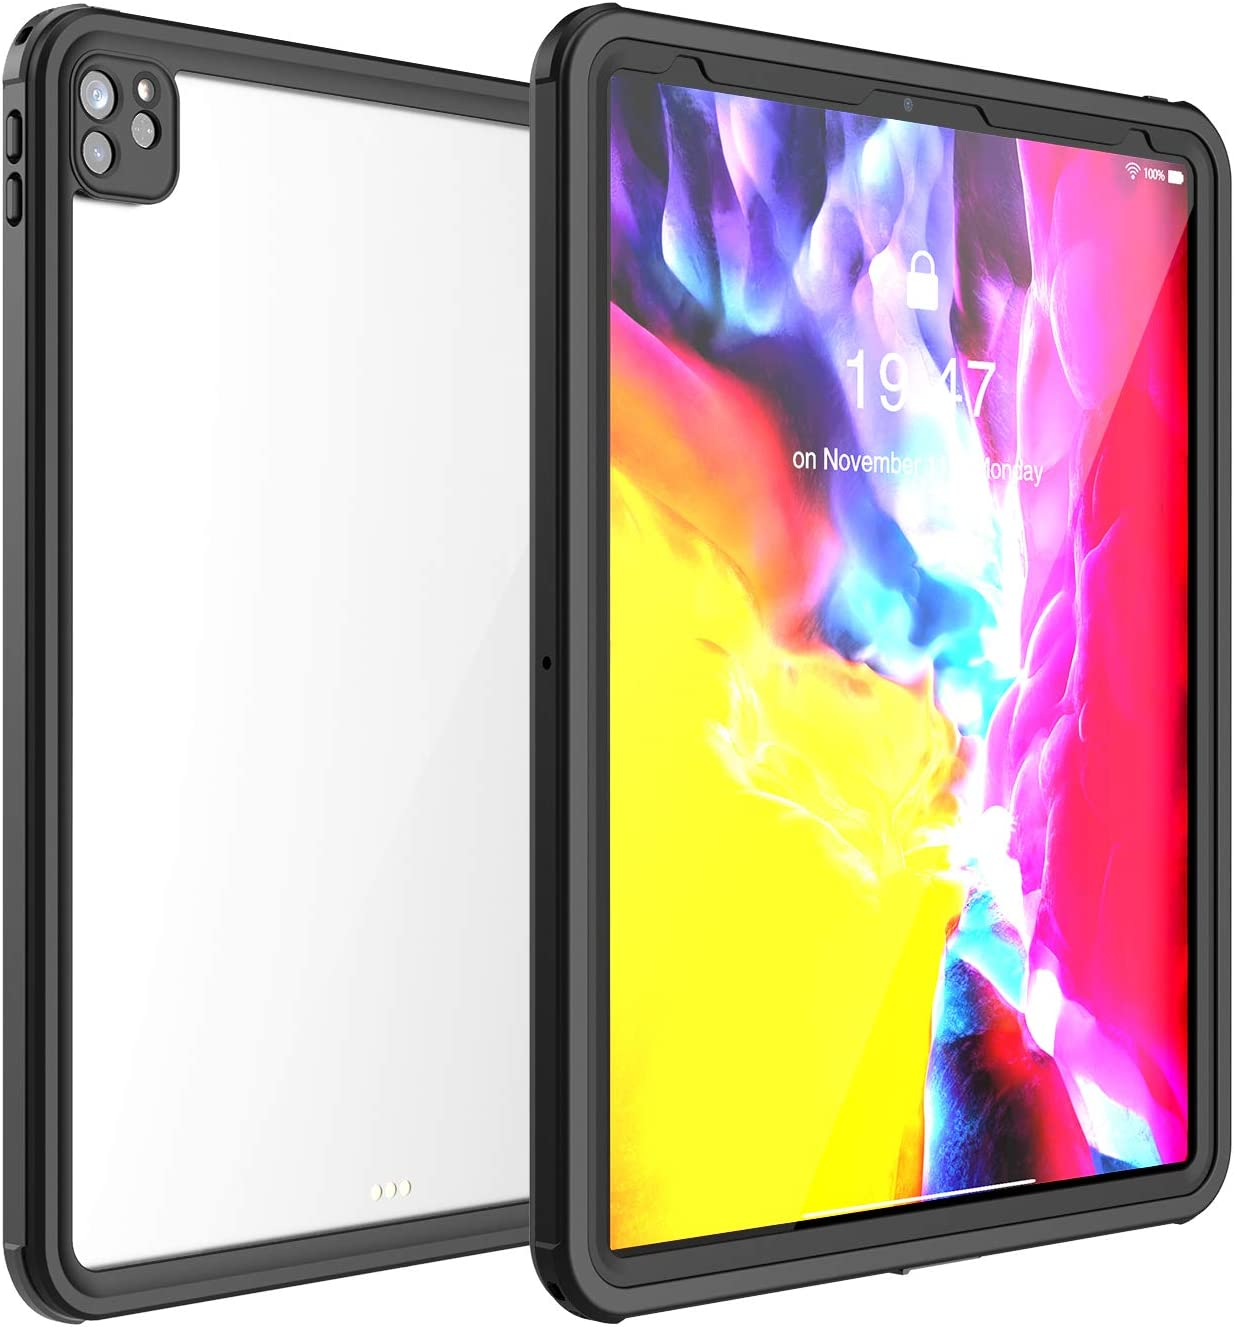 Waterproof Case for iPad Pro 12.9 2020 4th Gen,Shockproof Drop Proof Protective Case Premium Quality Cover High Touch Sensitivity with Kickstand Hand Rope for Apple New iPad Pro 12.9 2020 (Black)